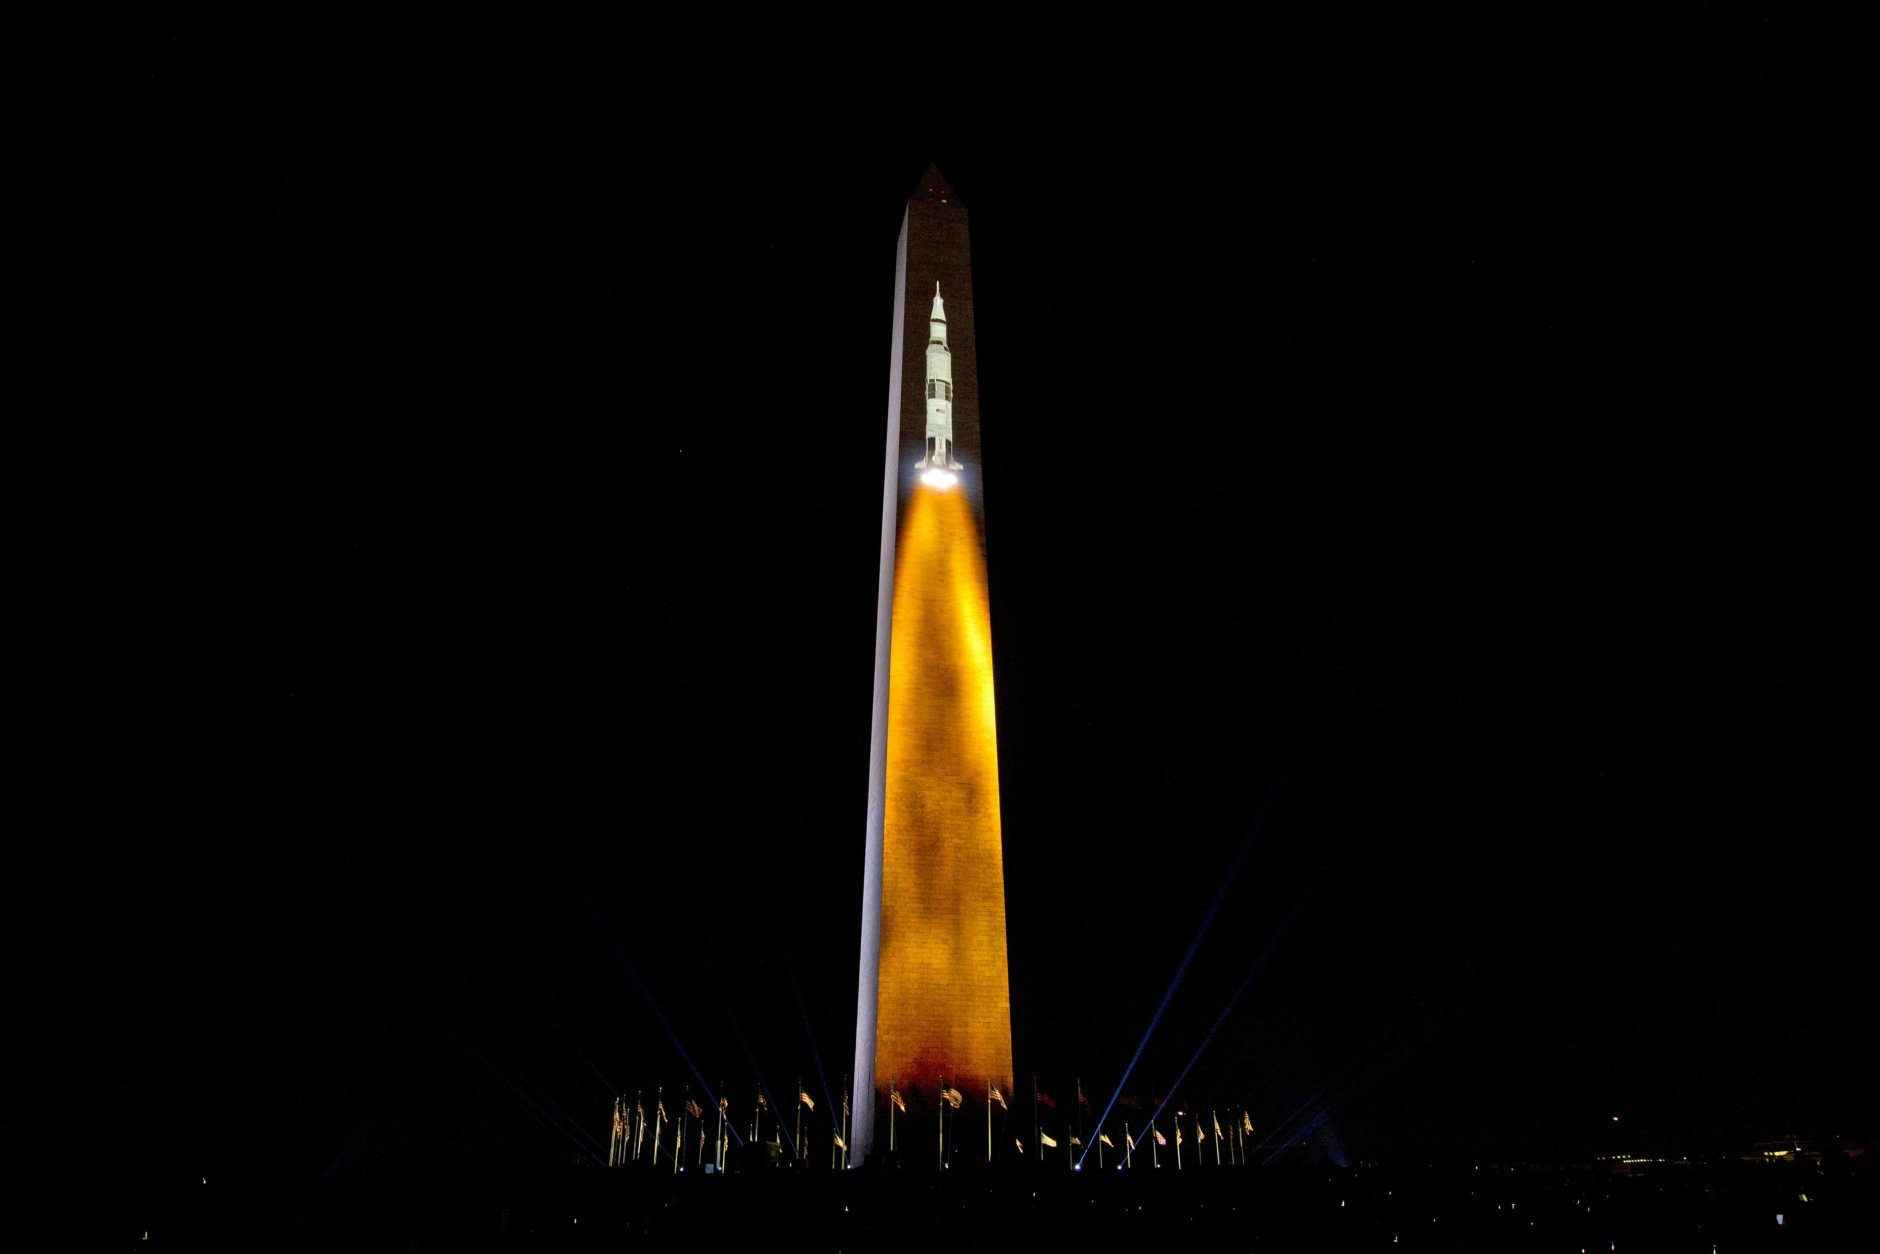 An image of a 363-foot Saturn V rocket used in the Apollo 11 mission, blasting off, is projected on the Washington Monument, during the 50th anniversary of the Apollo moon landing festivities at the National Mall in Washington, Friday, July 19, 2019. (AP Photo/Jose Luis Magana)